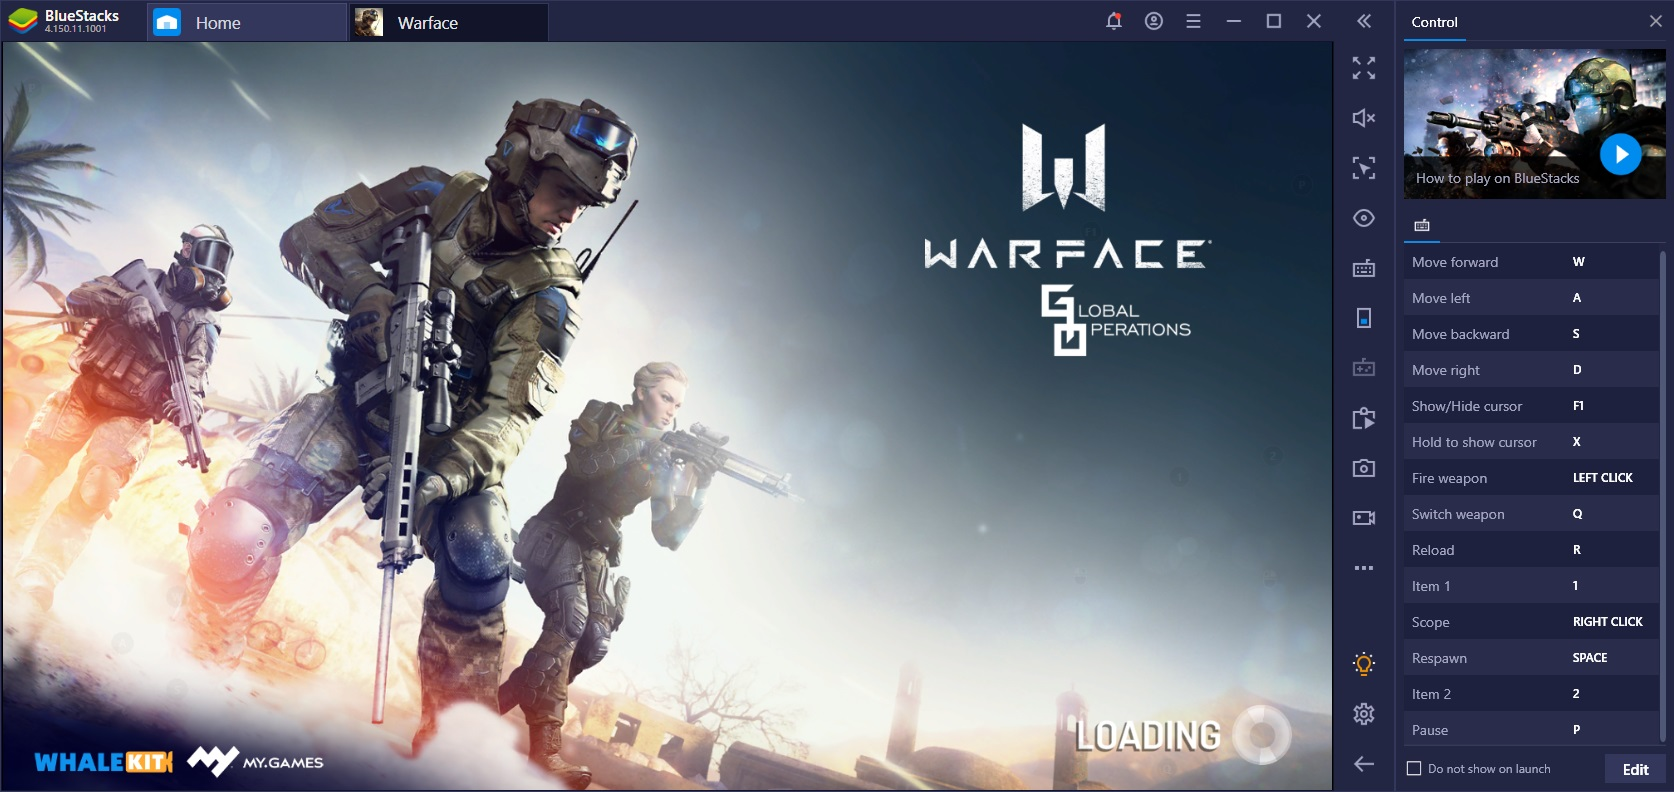 A First Look at Warface: Global Operations on PC